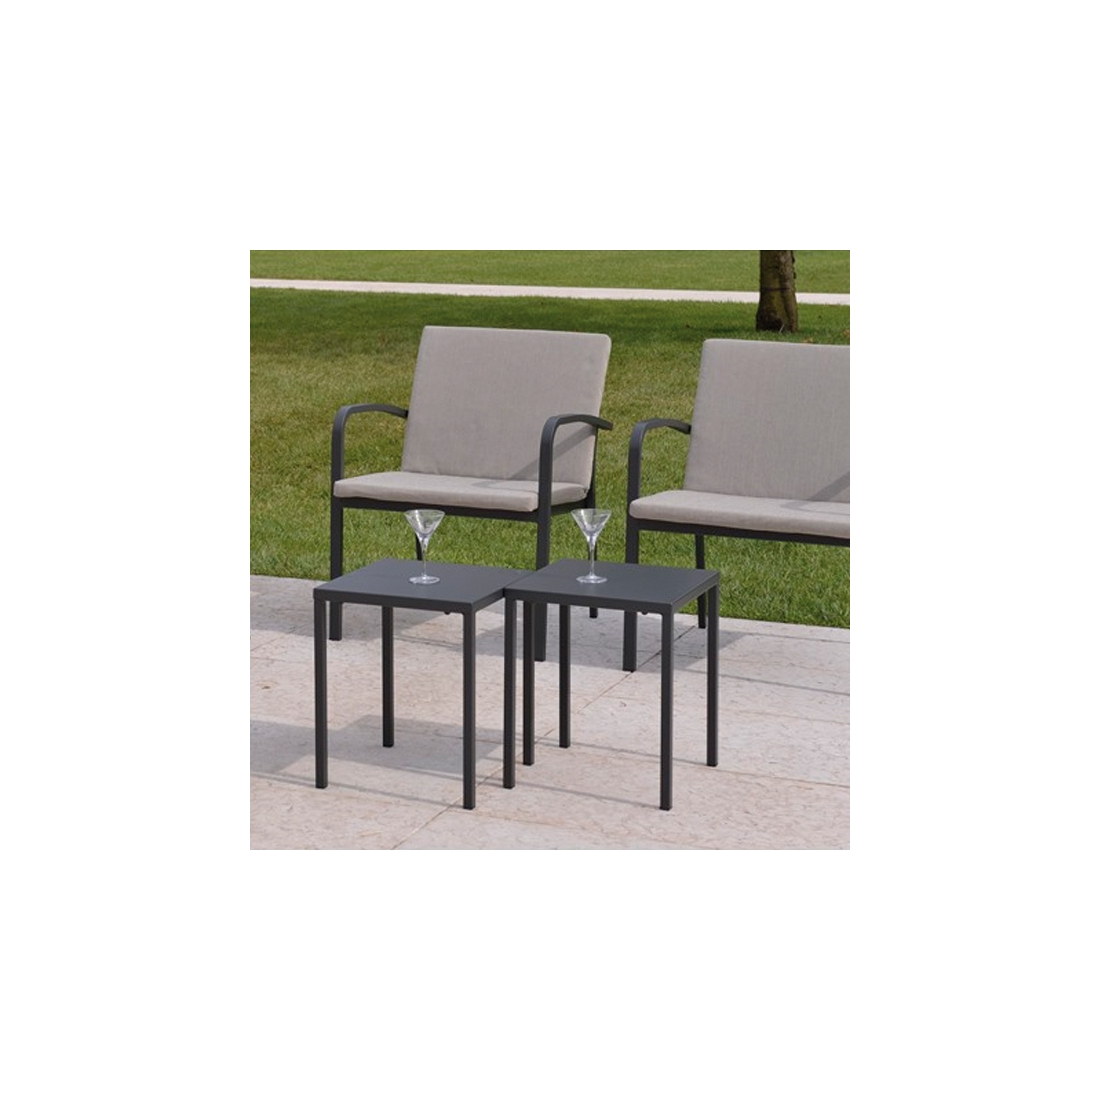 Affordable table jardin ikea tarno petite table basse design outdoor tout metal monobloc de - Table jardin nantes ...